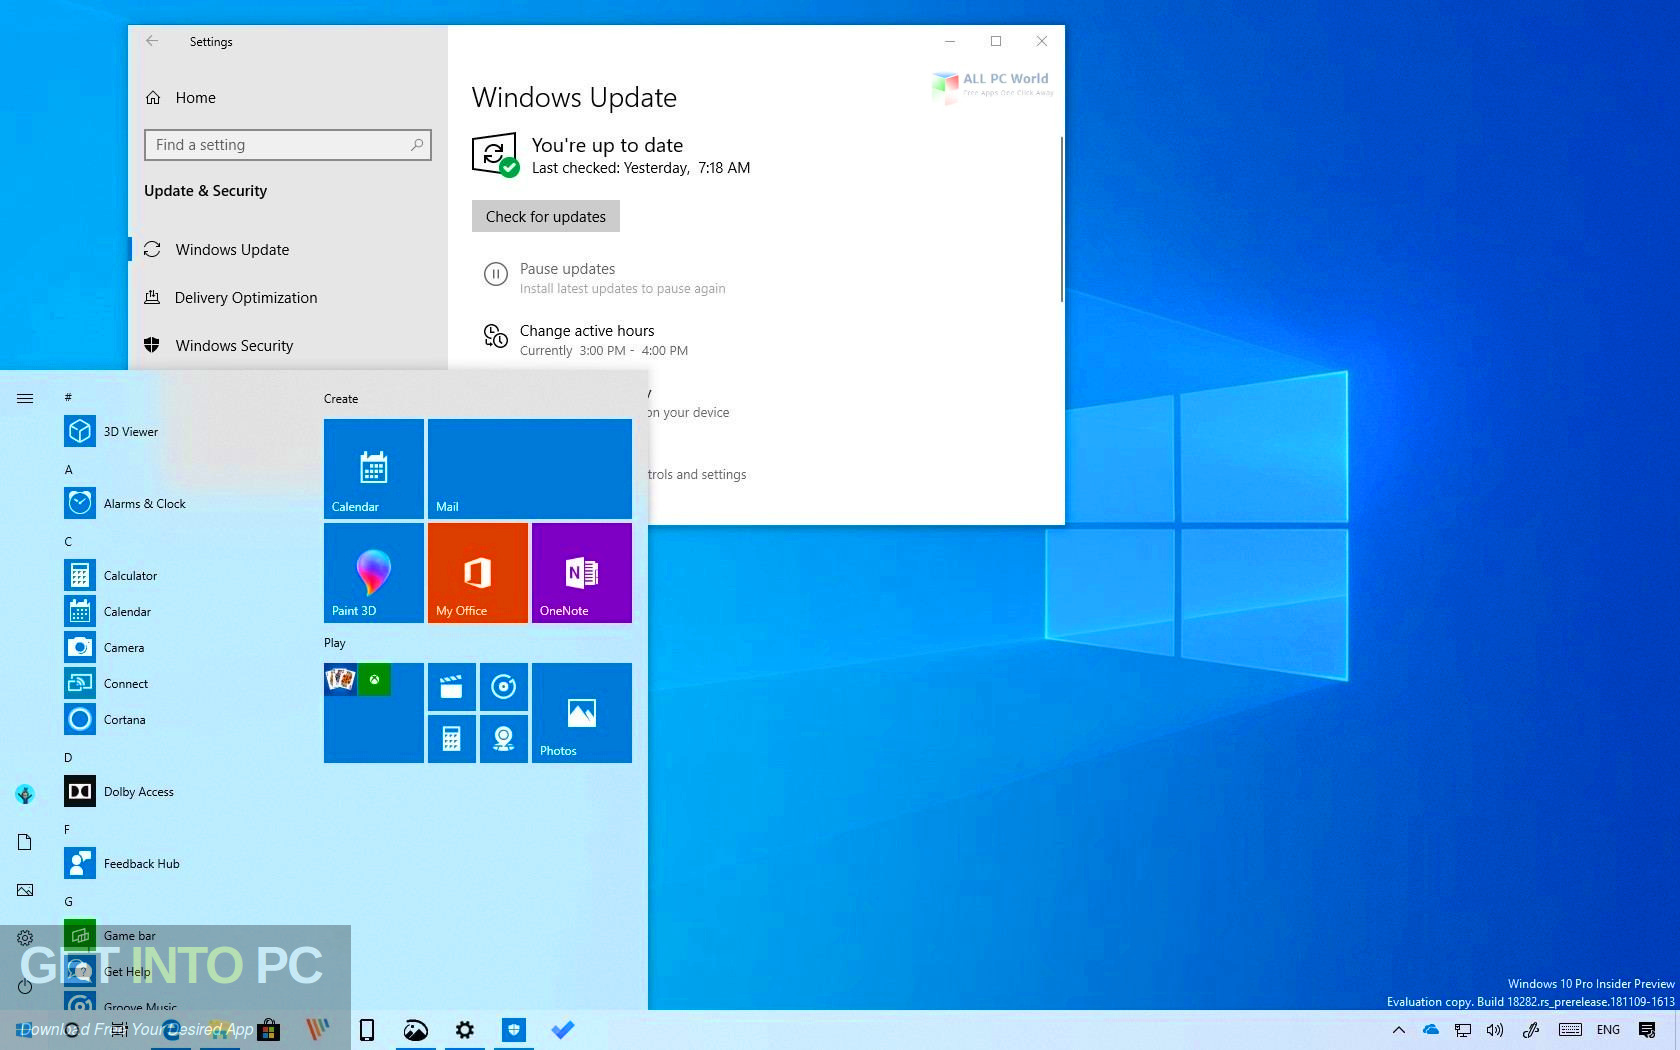 Windows 10 19H1 Updated Aug 2019 Direct Link Download-GetintoPC.com